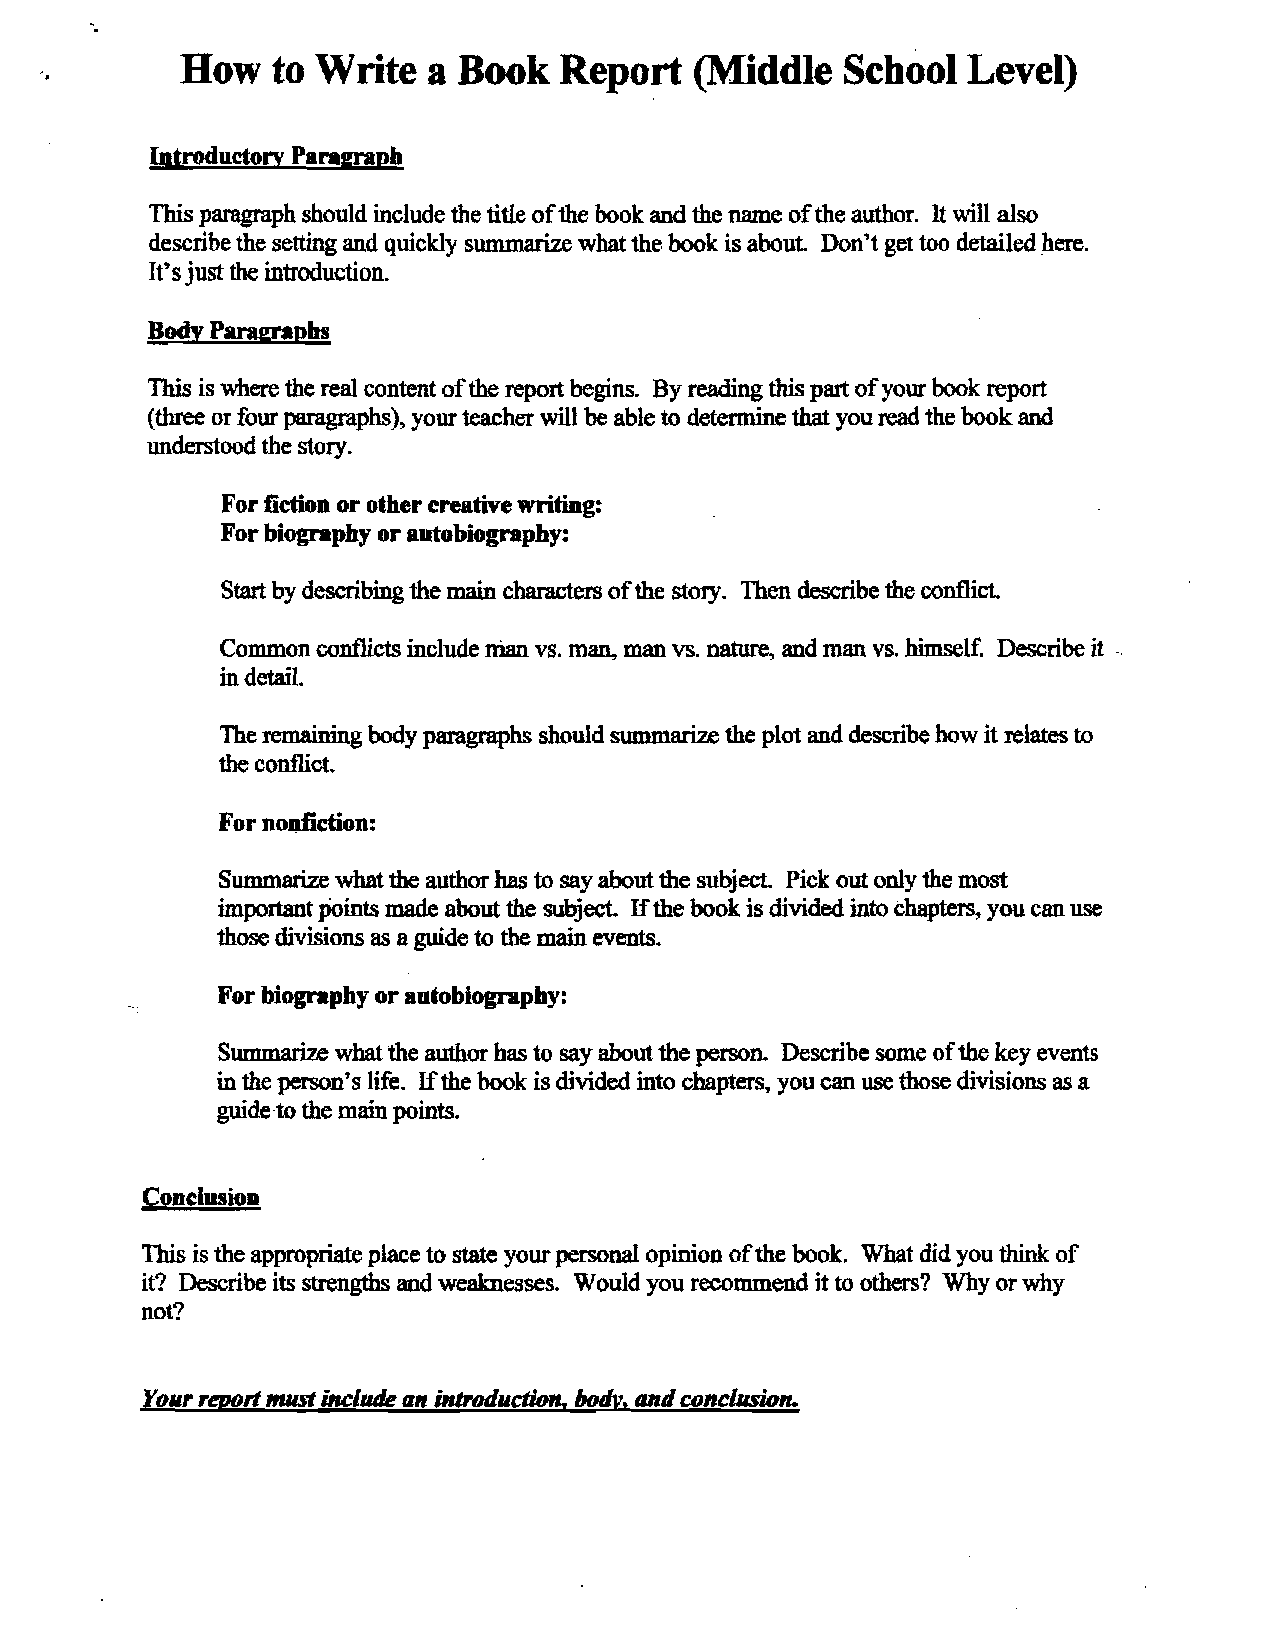 021 Canterbury Tales Essay Research Paper Topics Prologue Questions Outline Examples20 Example Of Astounding Conclusion Conclusions In About Smoking Full